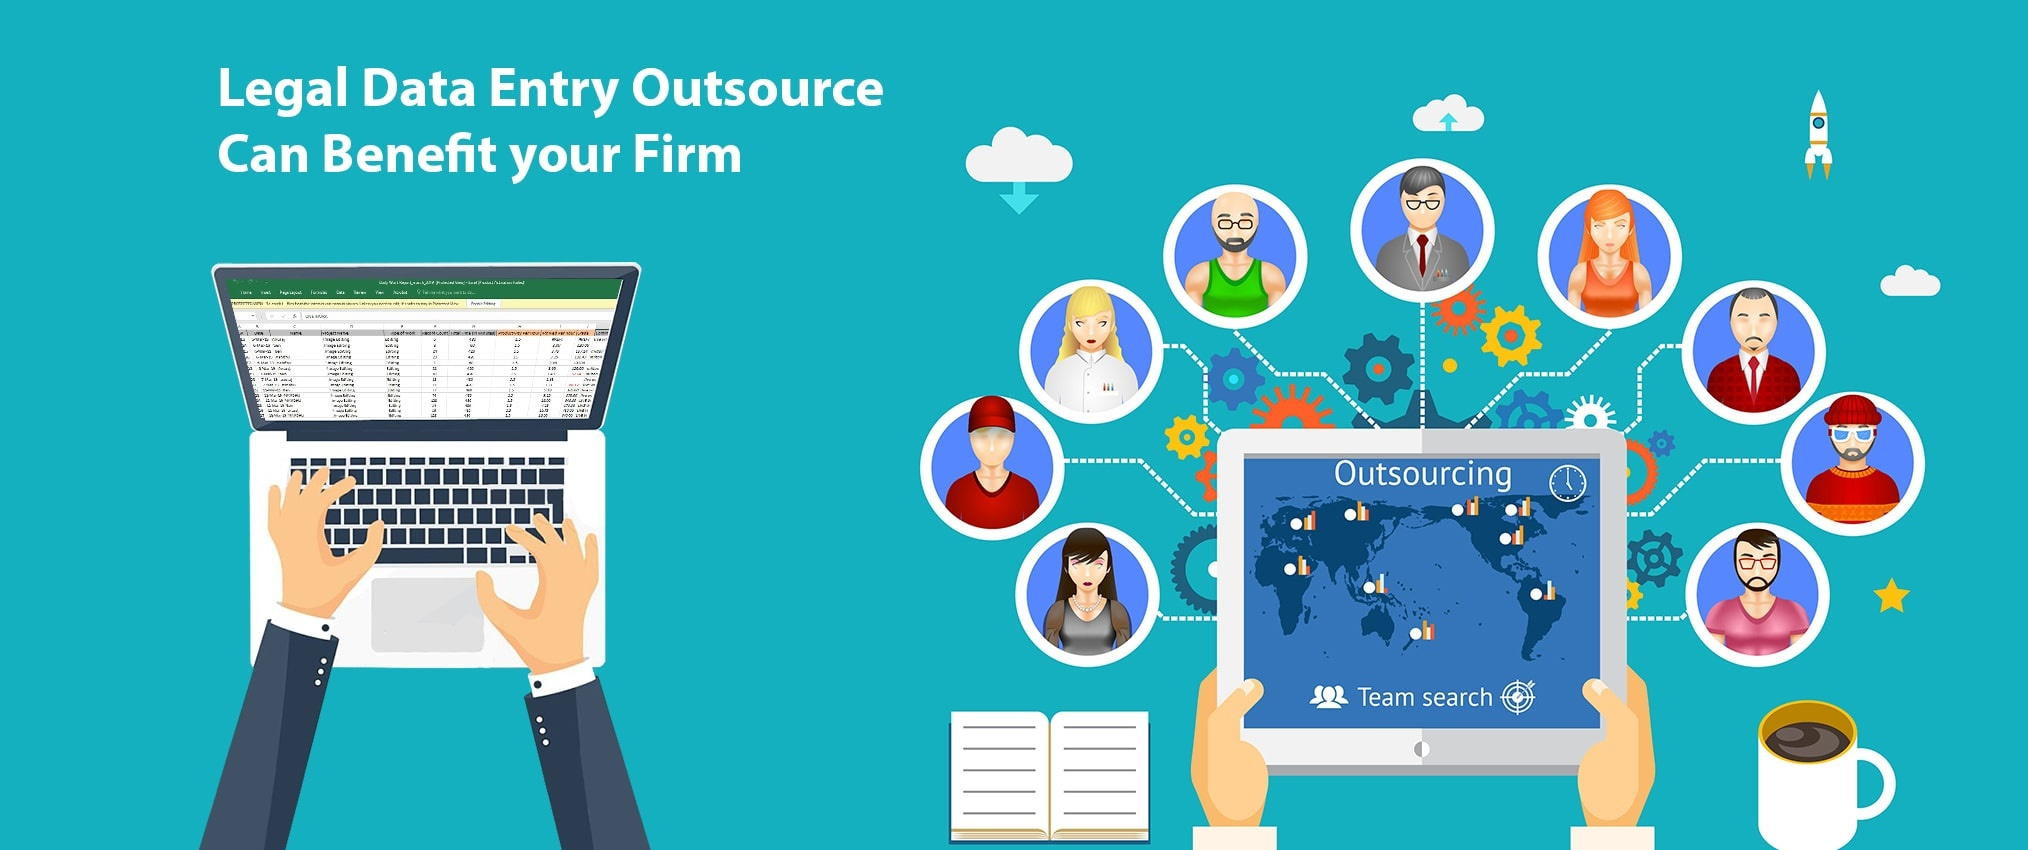 how-legal-data-entry-outsource-can-benefit-your-firm